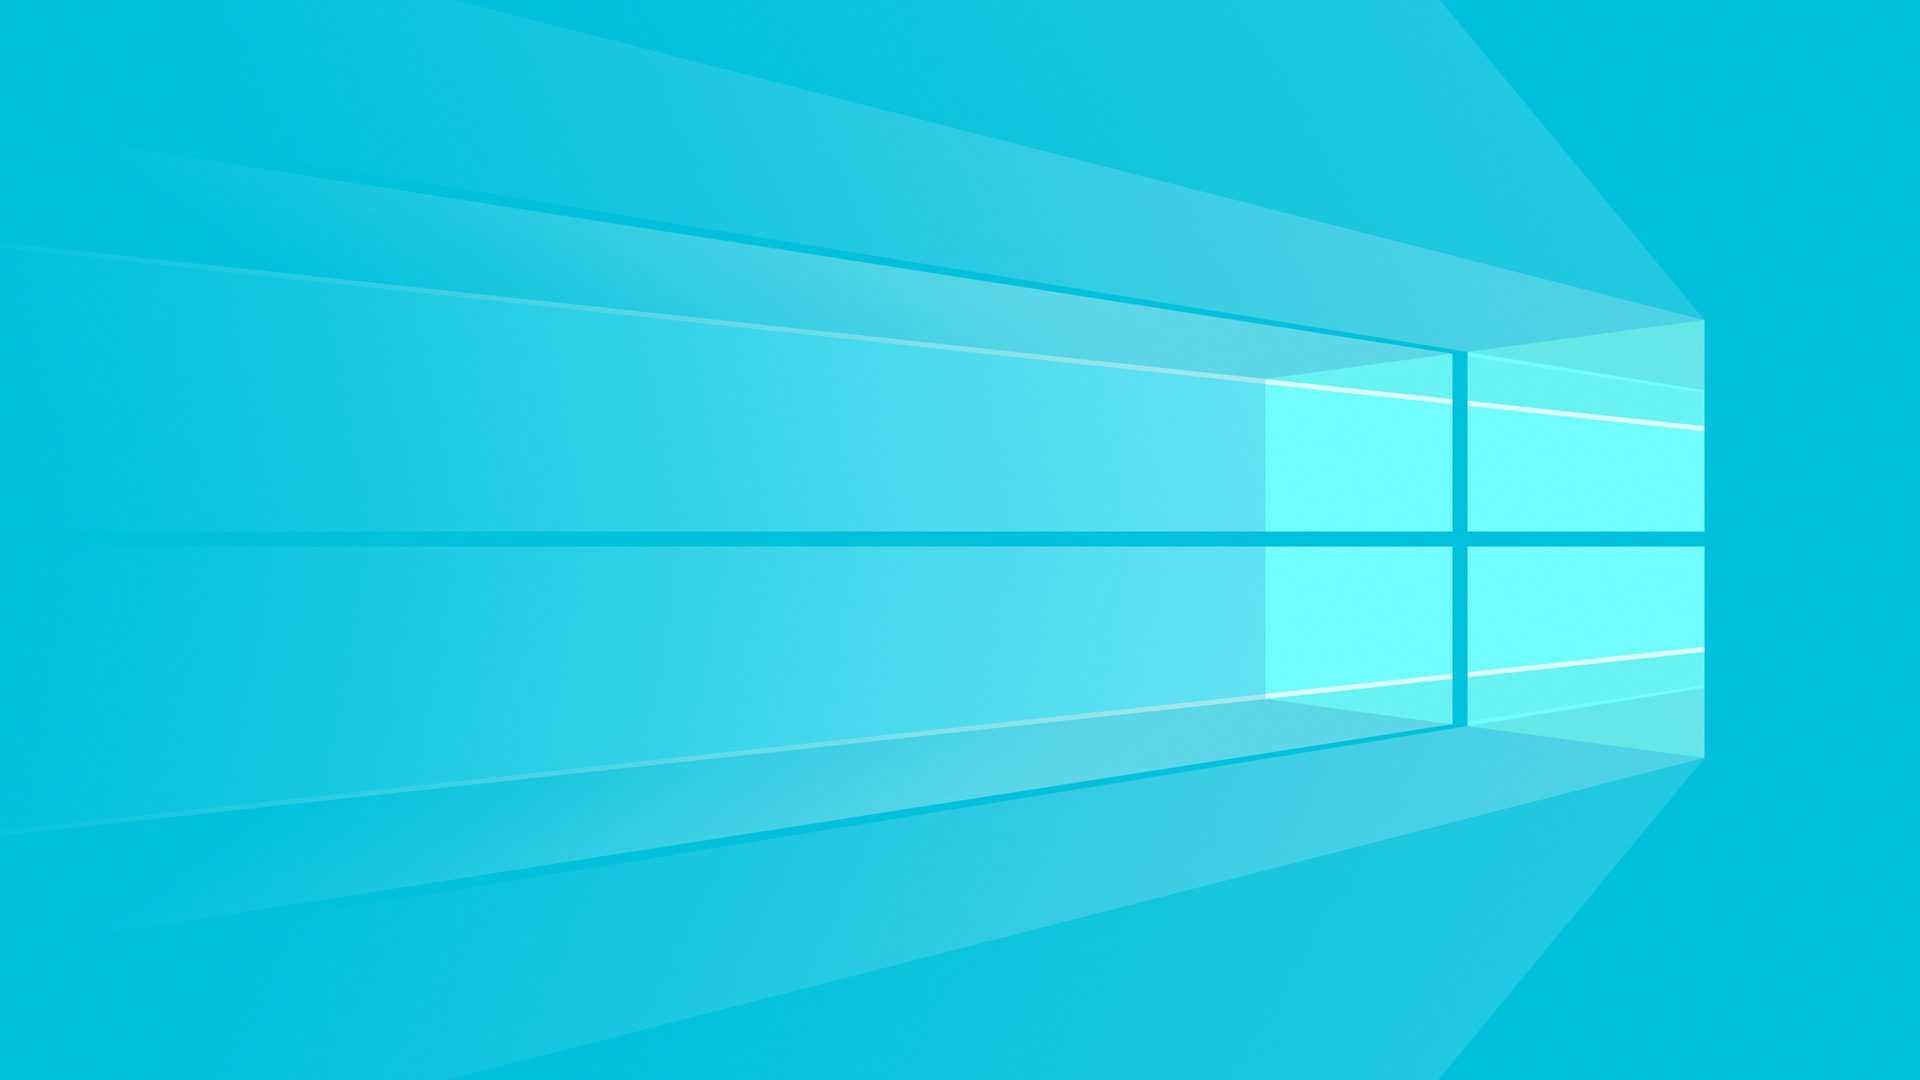 Windows10 Simple Solid Color Wallpaper 8wallpapers